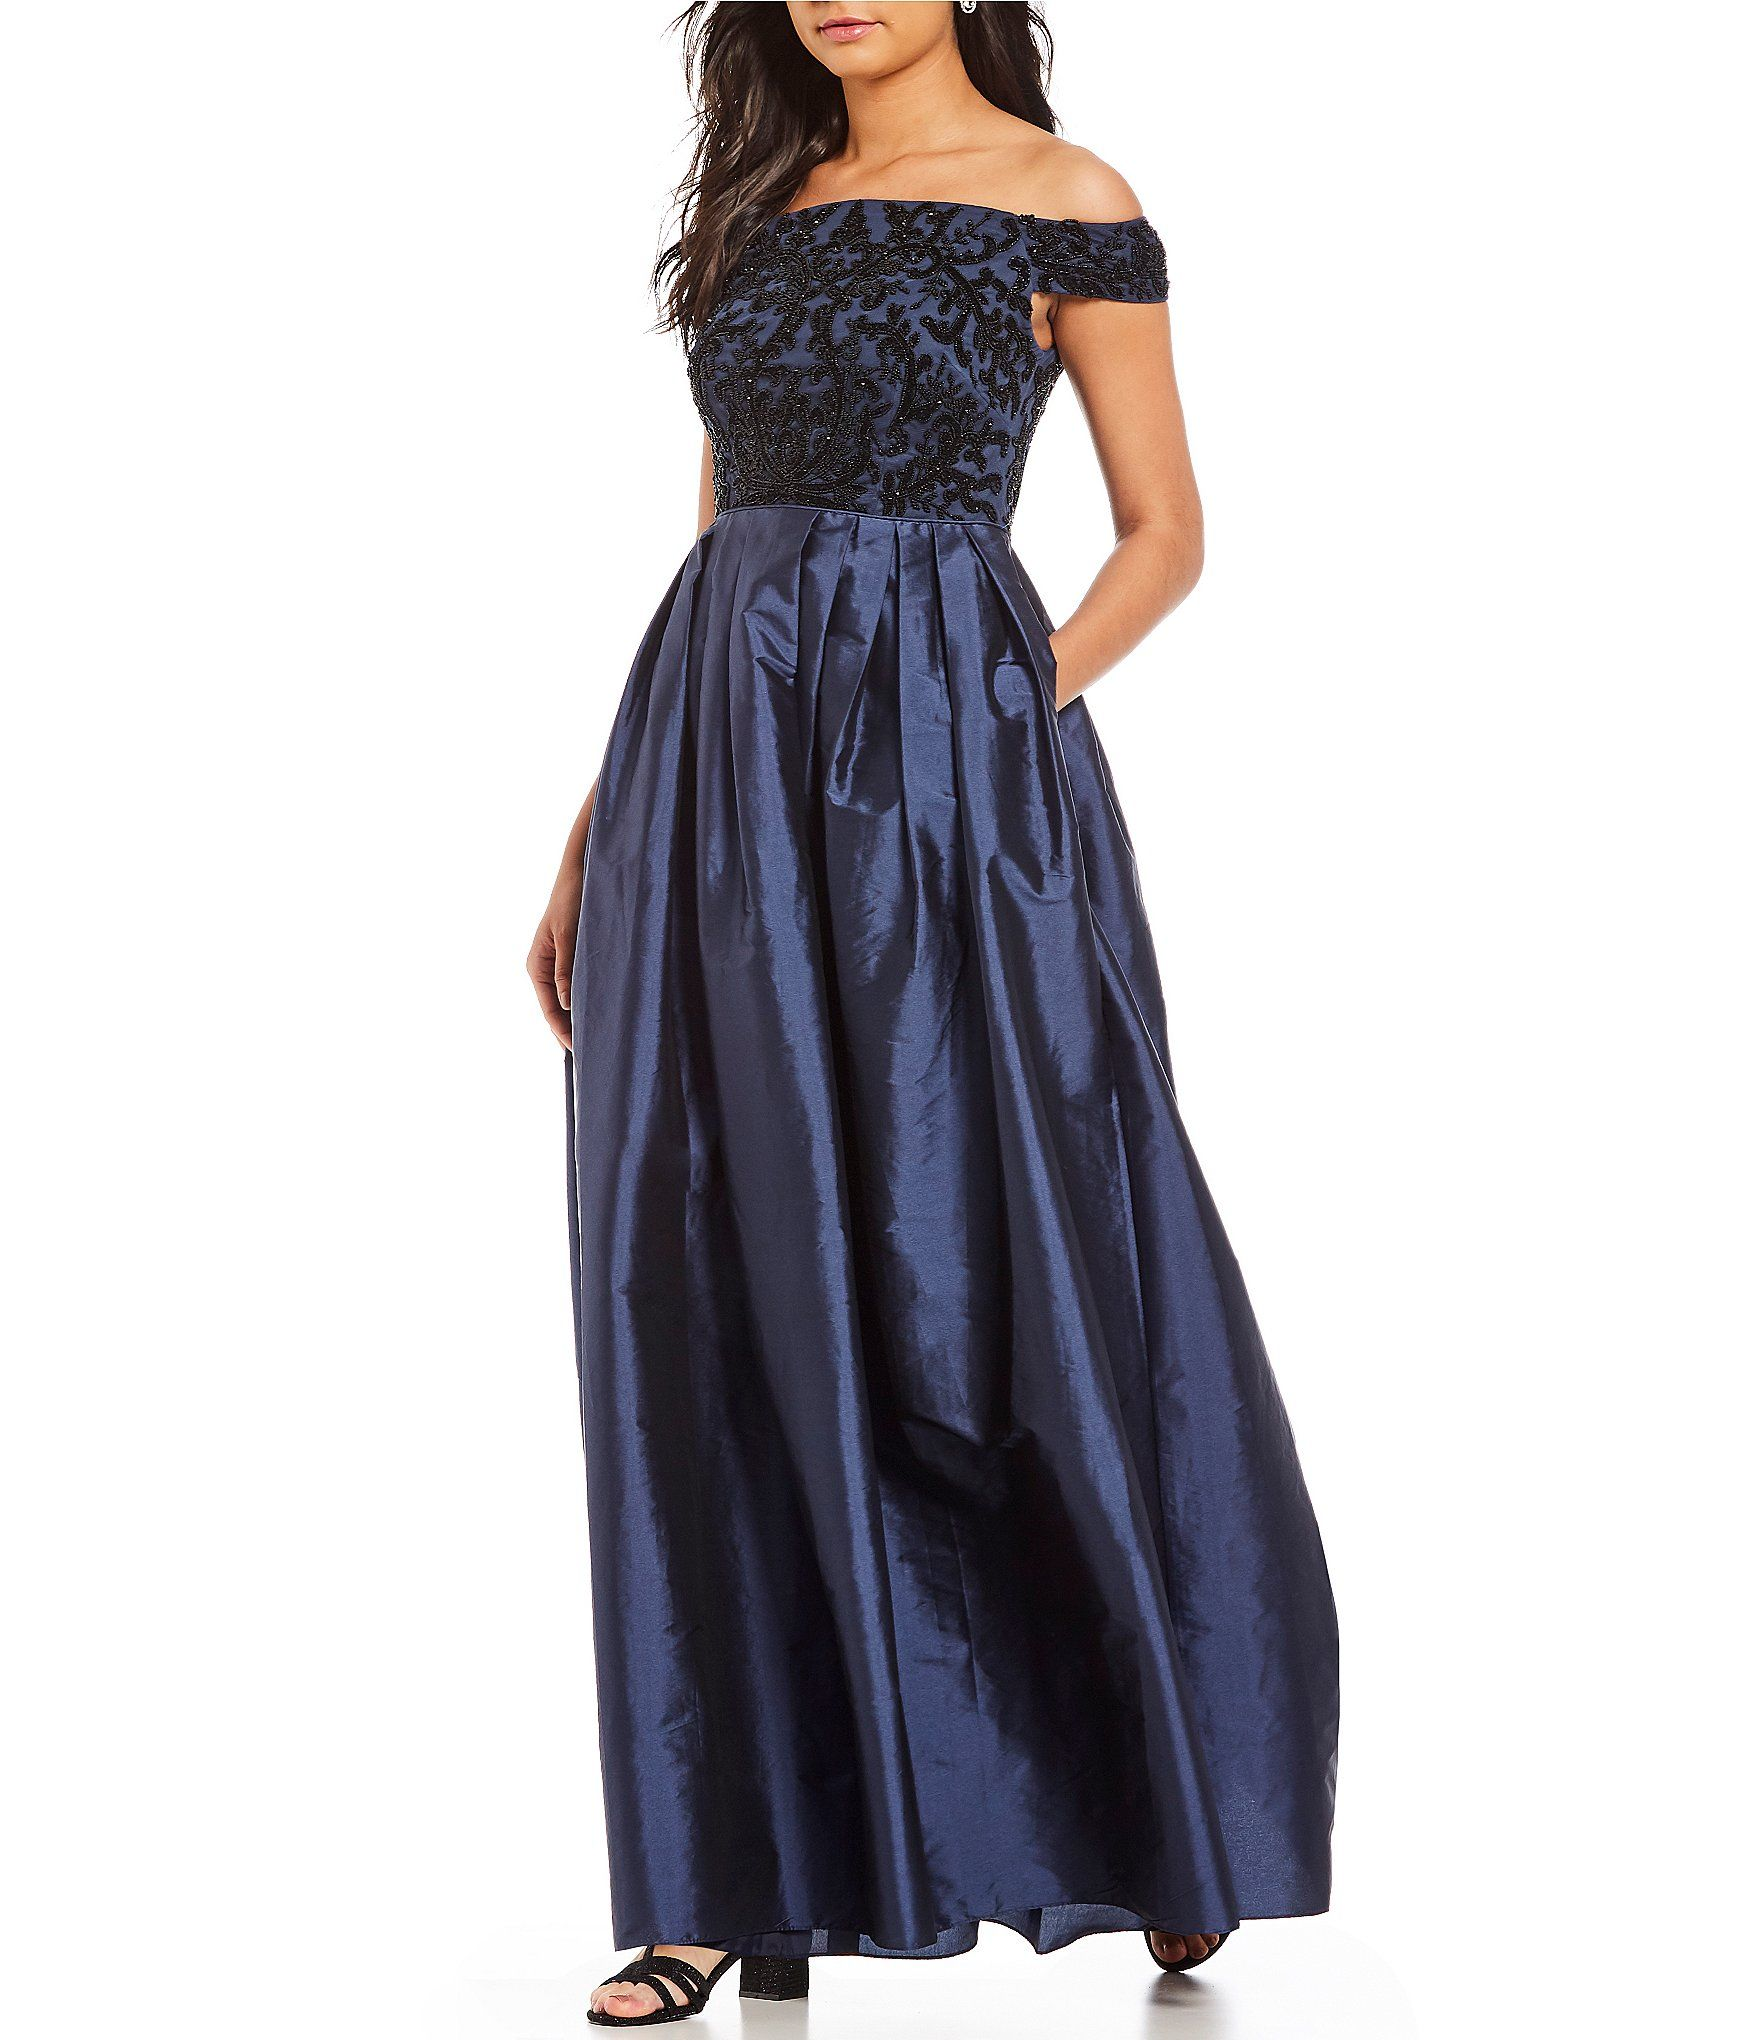 a0f014c96b2 Adrianna Papell Off-the-Shoulder Beaded Bodice Ball Gown in 2019